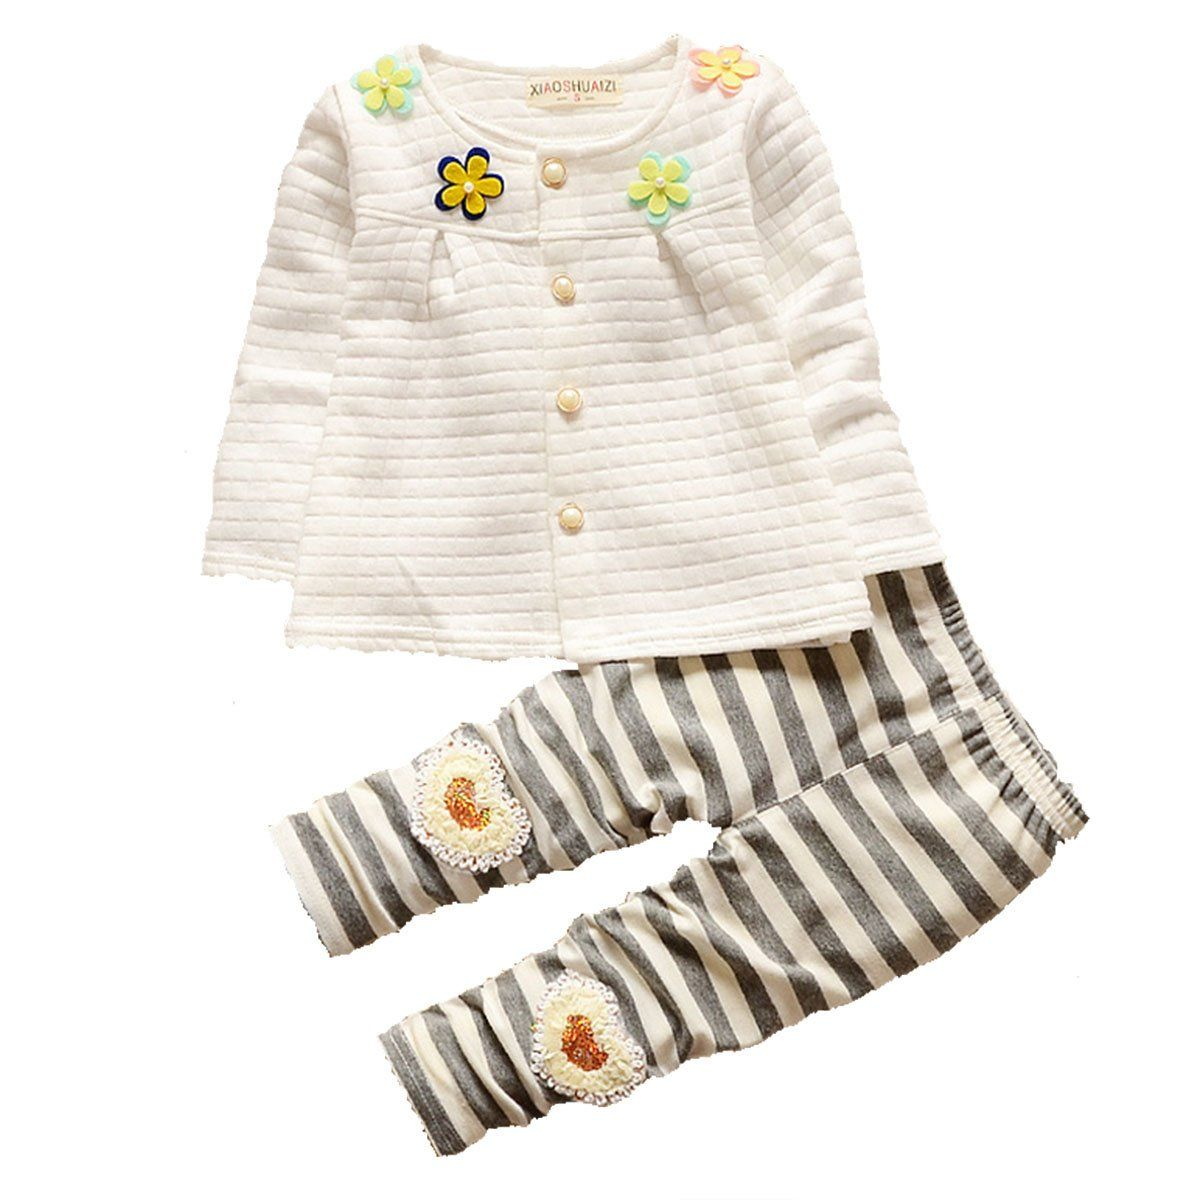 KINYBABY 2pcs Toddler Baby Girl Clothing Set Cute Cardigan Top ...